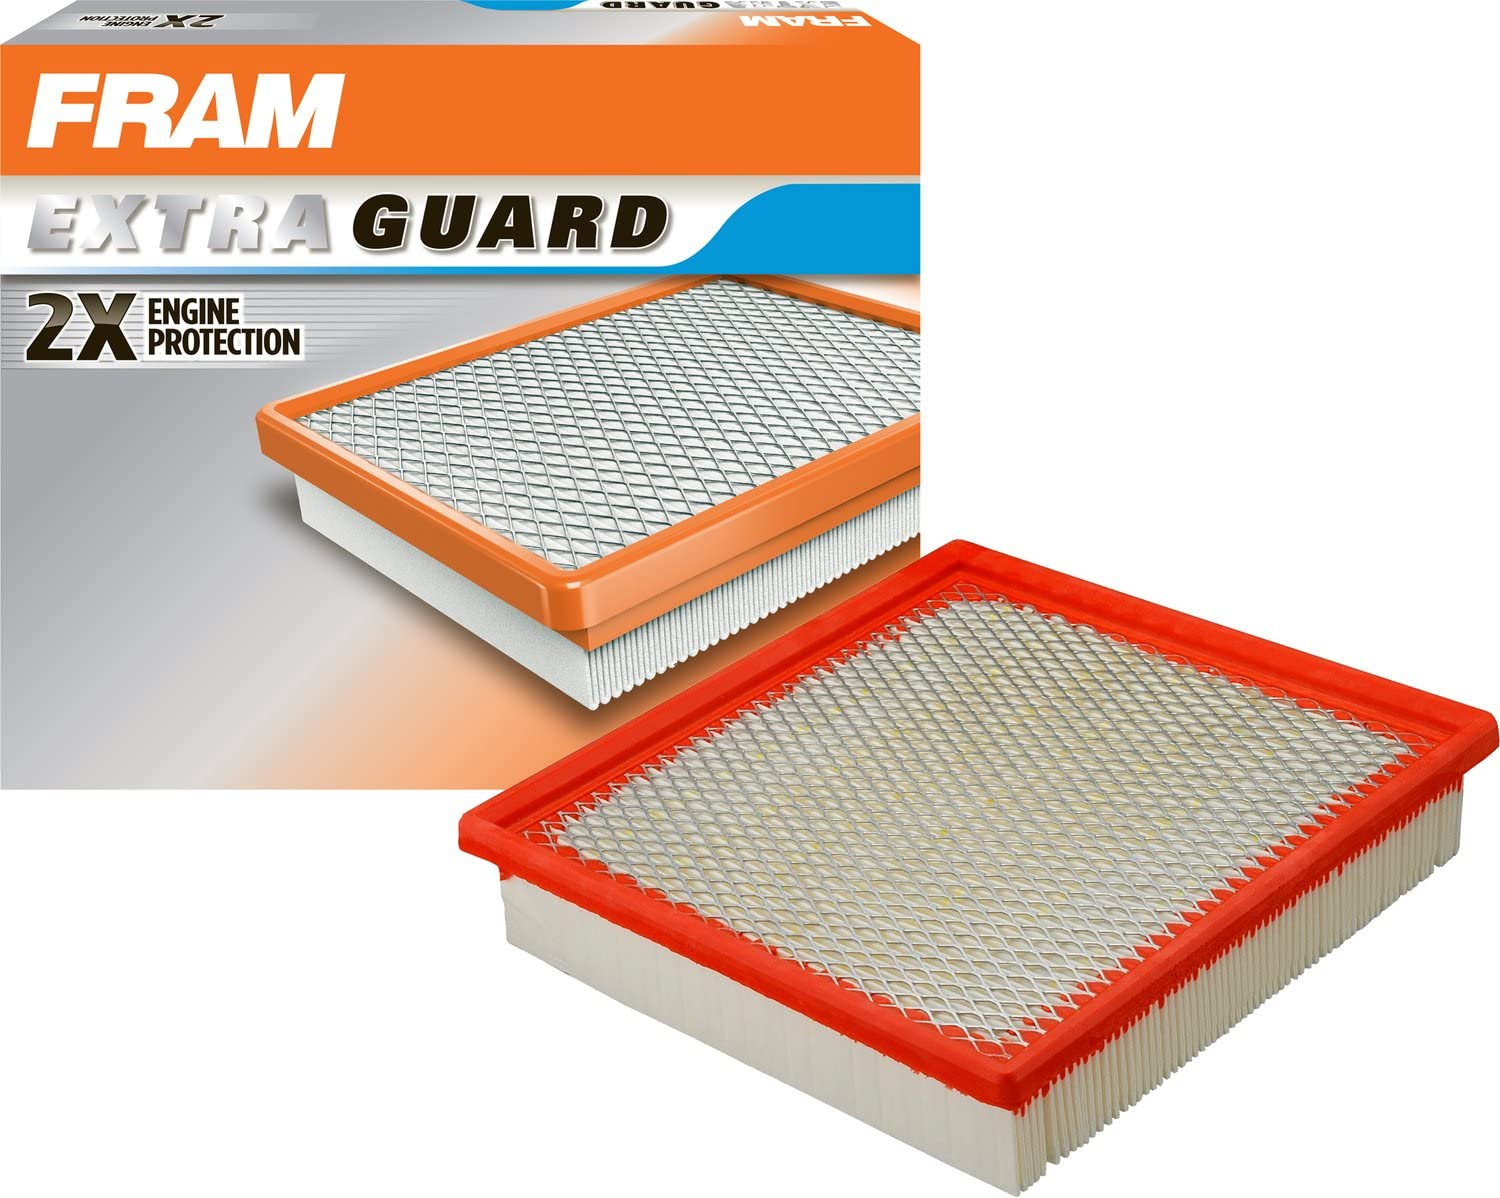 FRAM CA9762 Extra Guard Flexible Rectangular Panel Air Filter